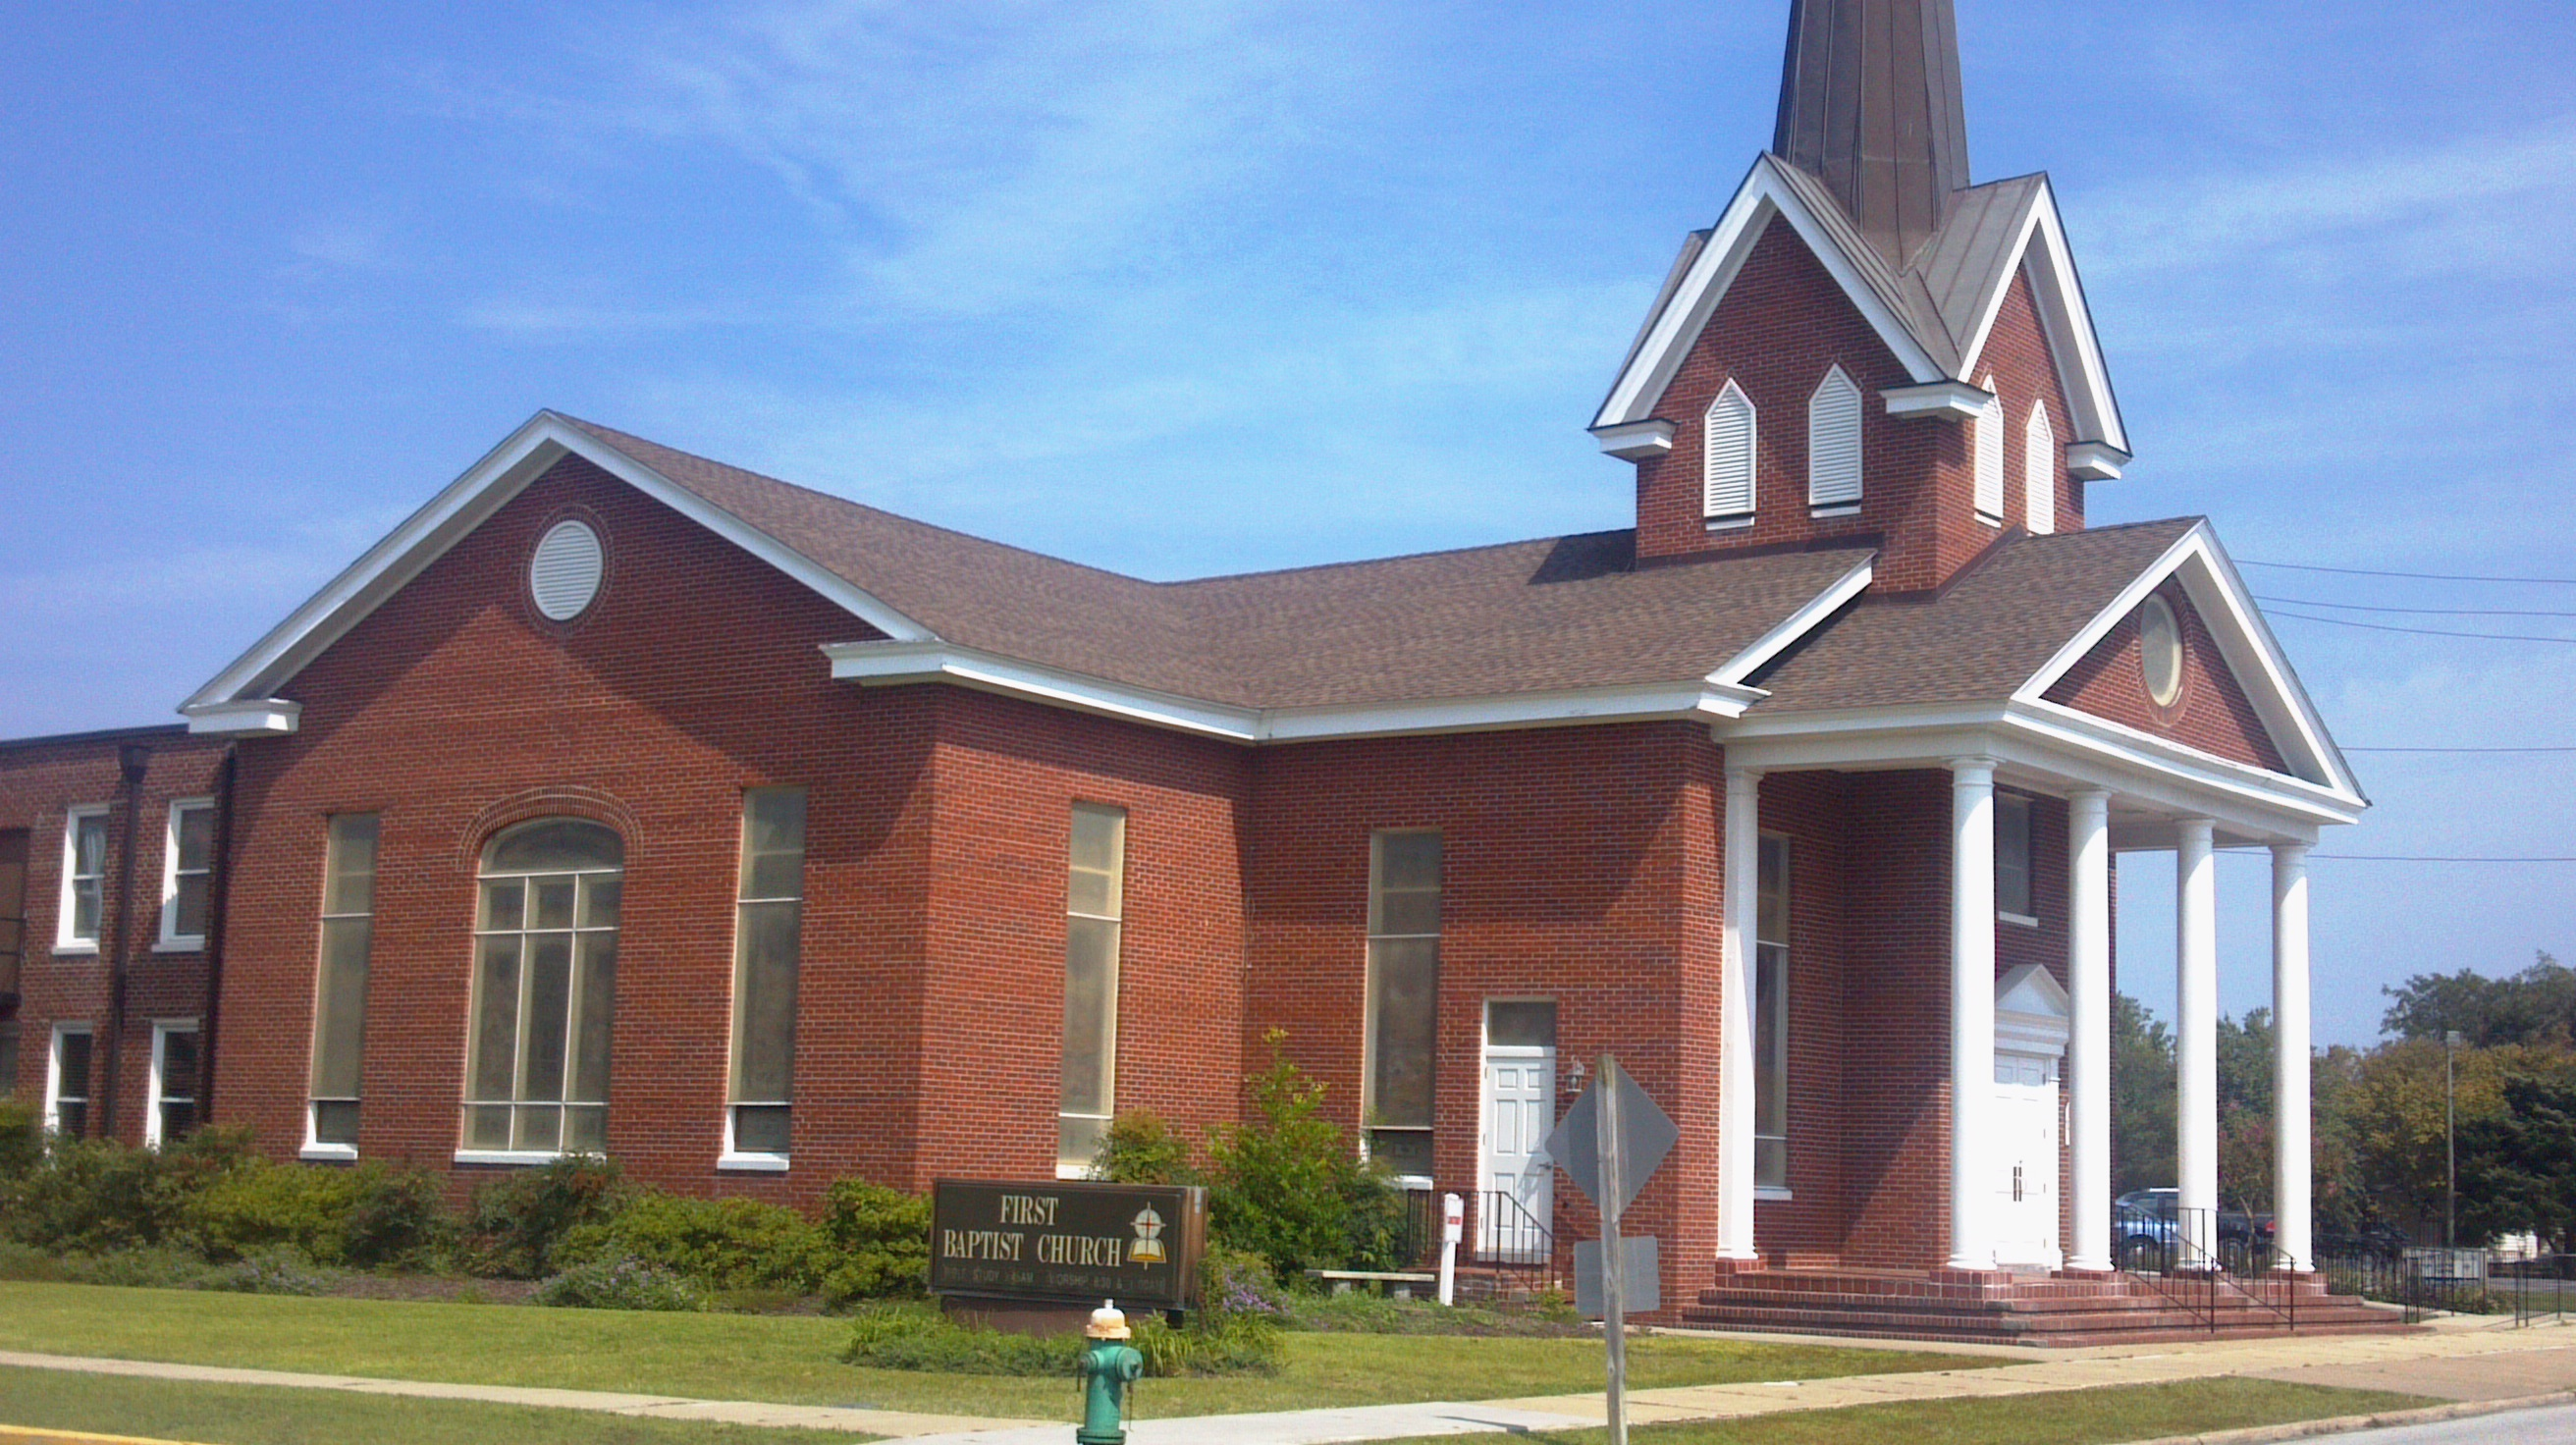 OUR FEATURED CHURCH THIS WEEK IS THE FIRST BAPTIST CHURCH, MOREHEAD CITY, N.C. (PHOTO BY PASTOR DAVIS)